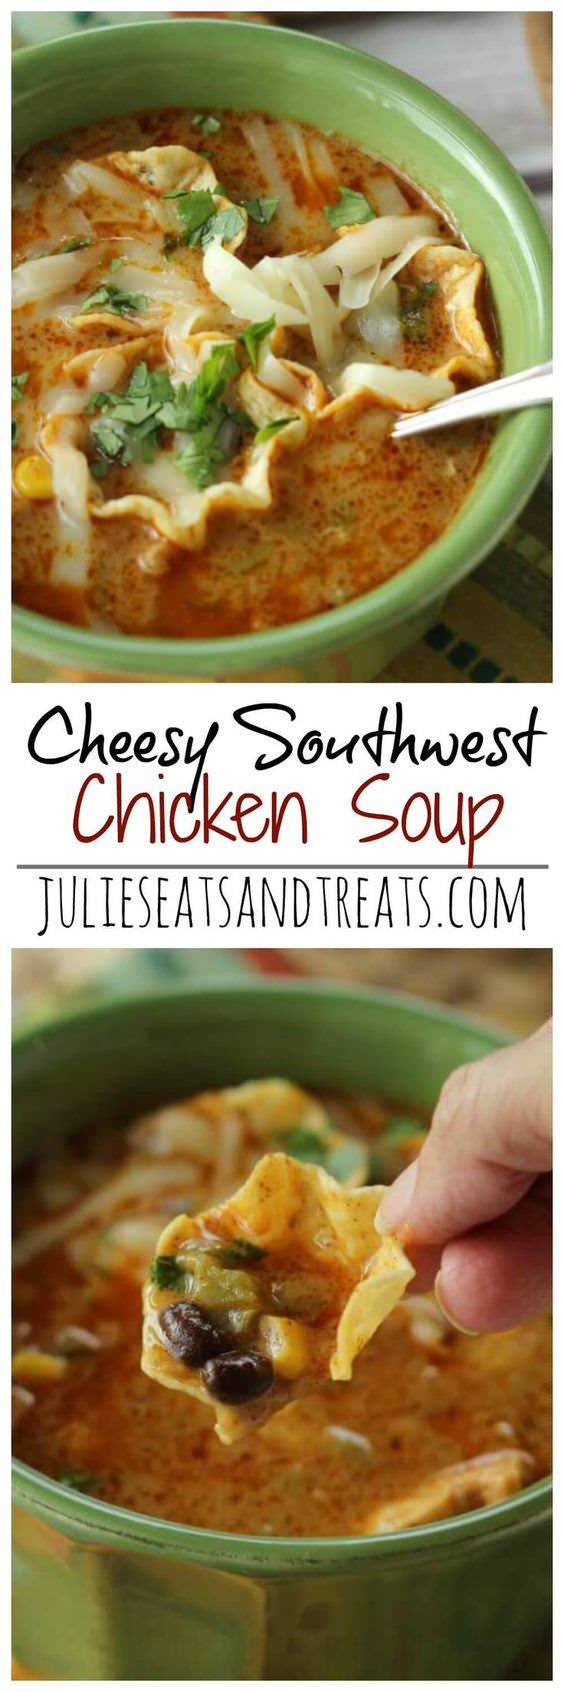 Cheesy Southwest Chicken Soup Recipe – Comforting soup filled with onions, peppers, black beans, corn, and finished off with a little cream to give it that extra little something!